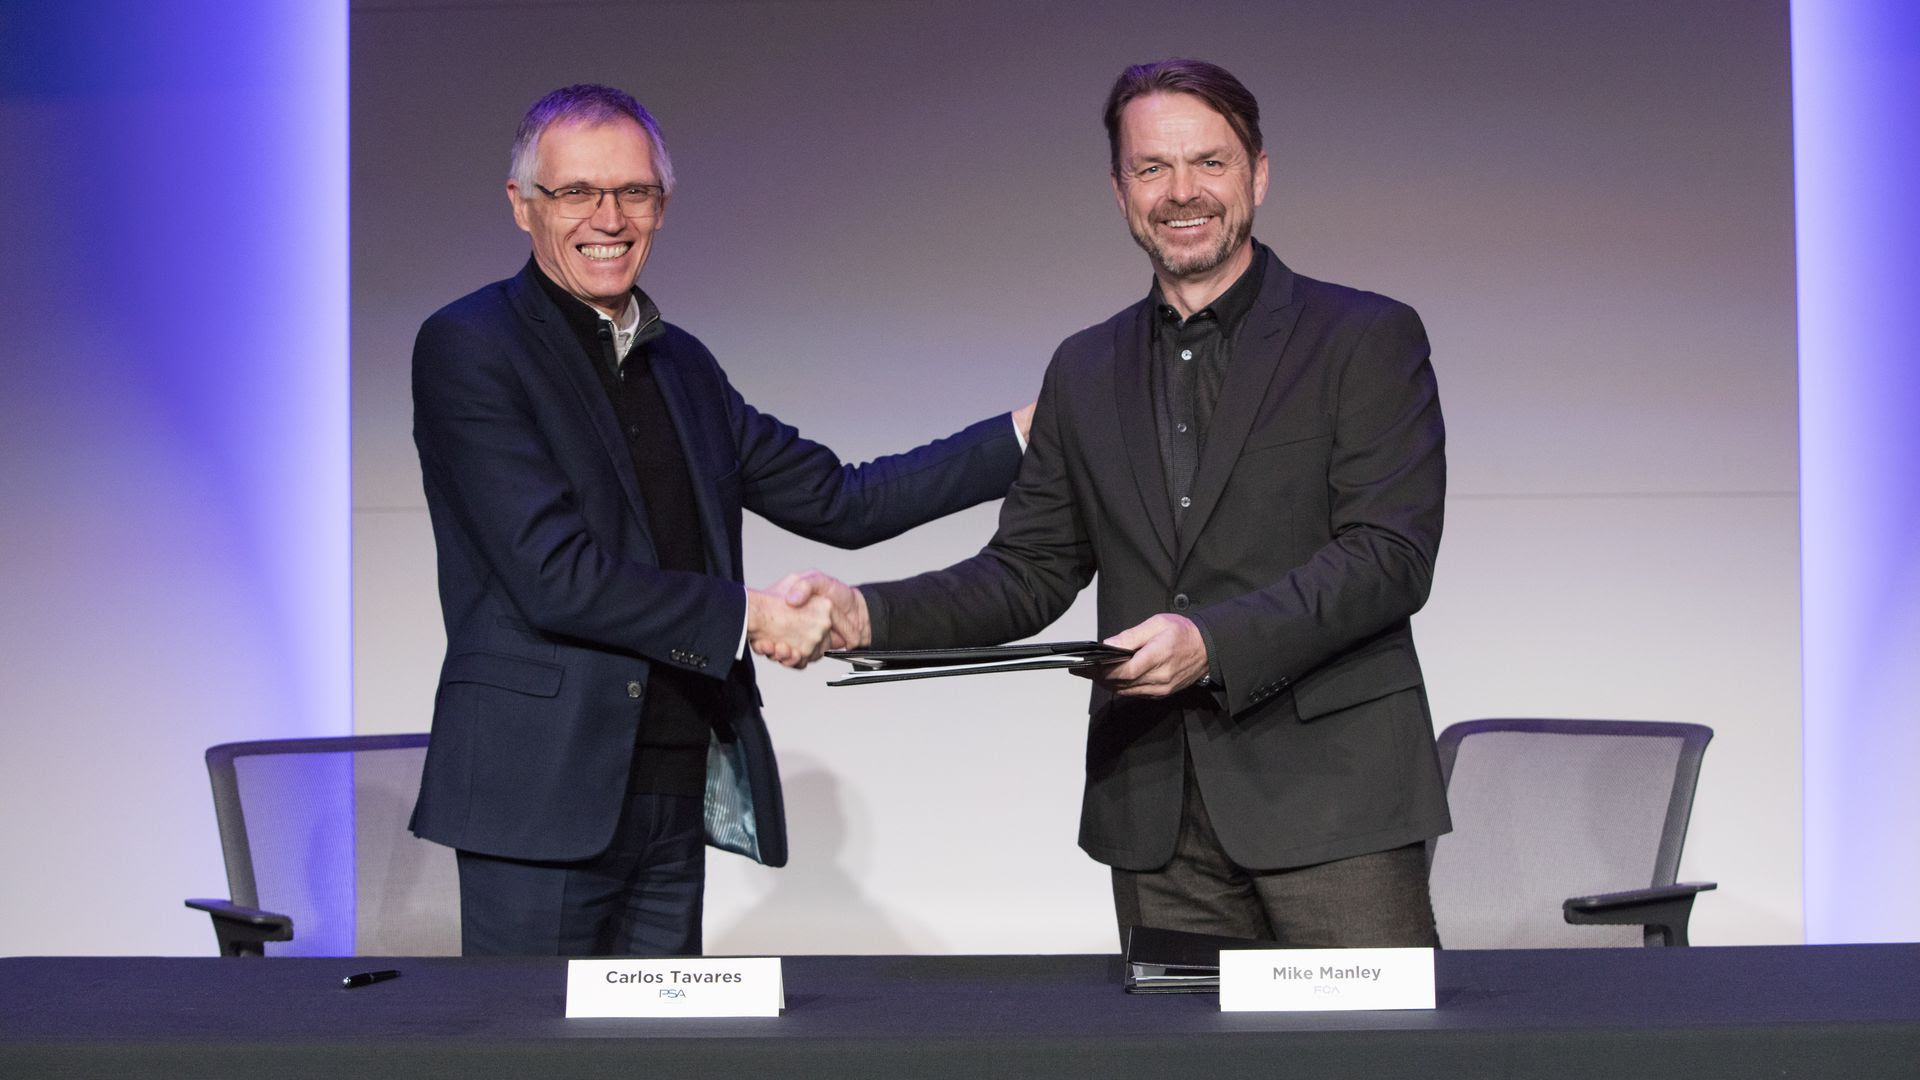 The CEO's of both companies shaking hands.